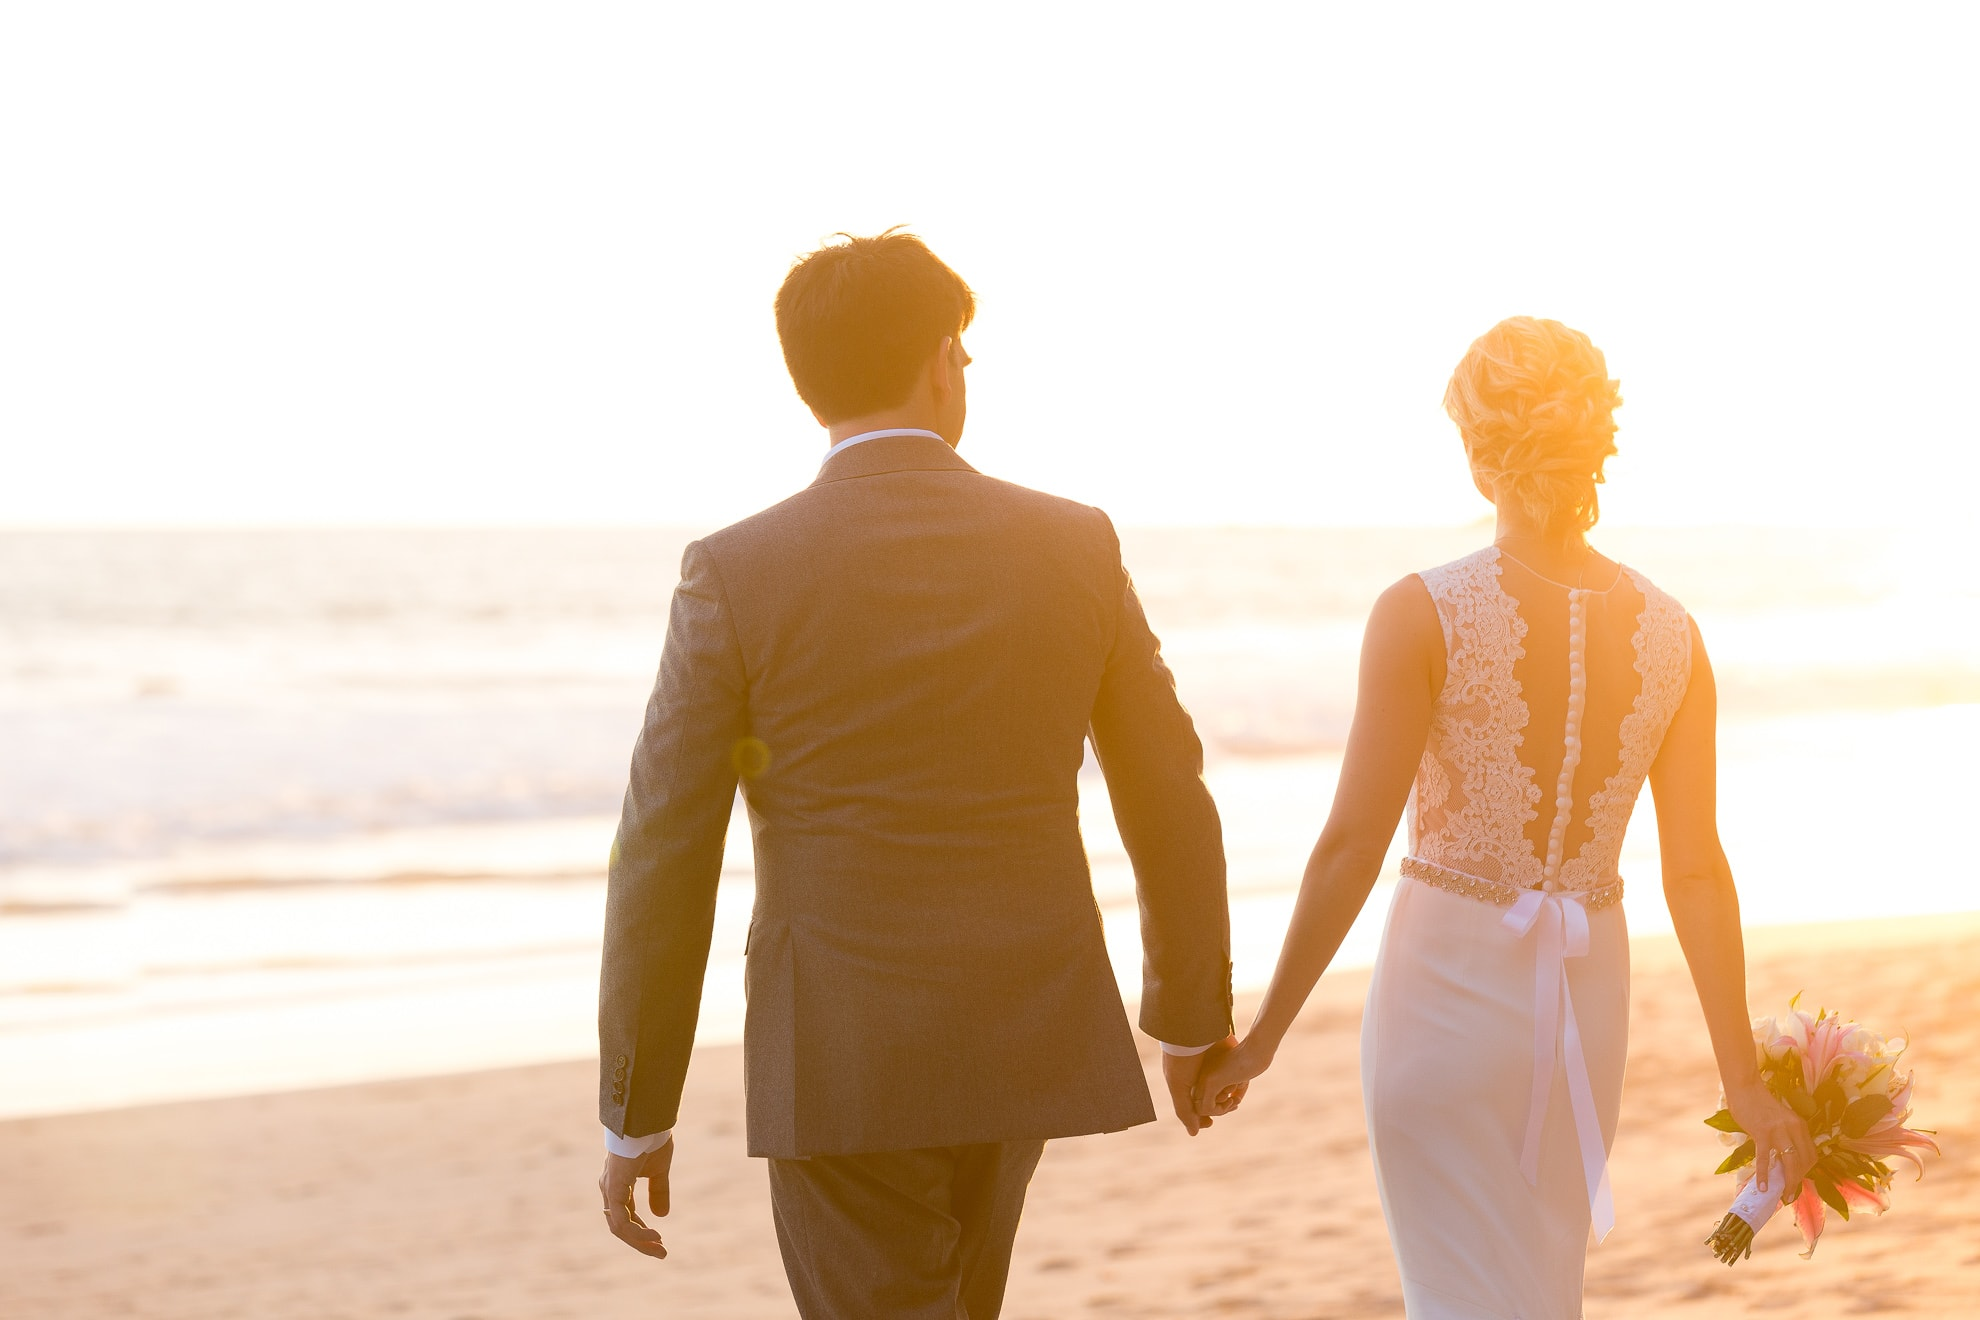 walking off into the sunset of their destination wedding